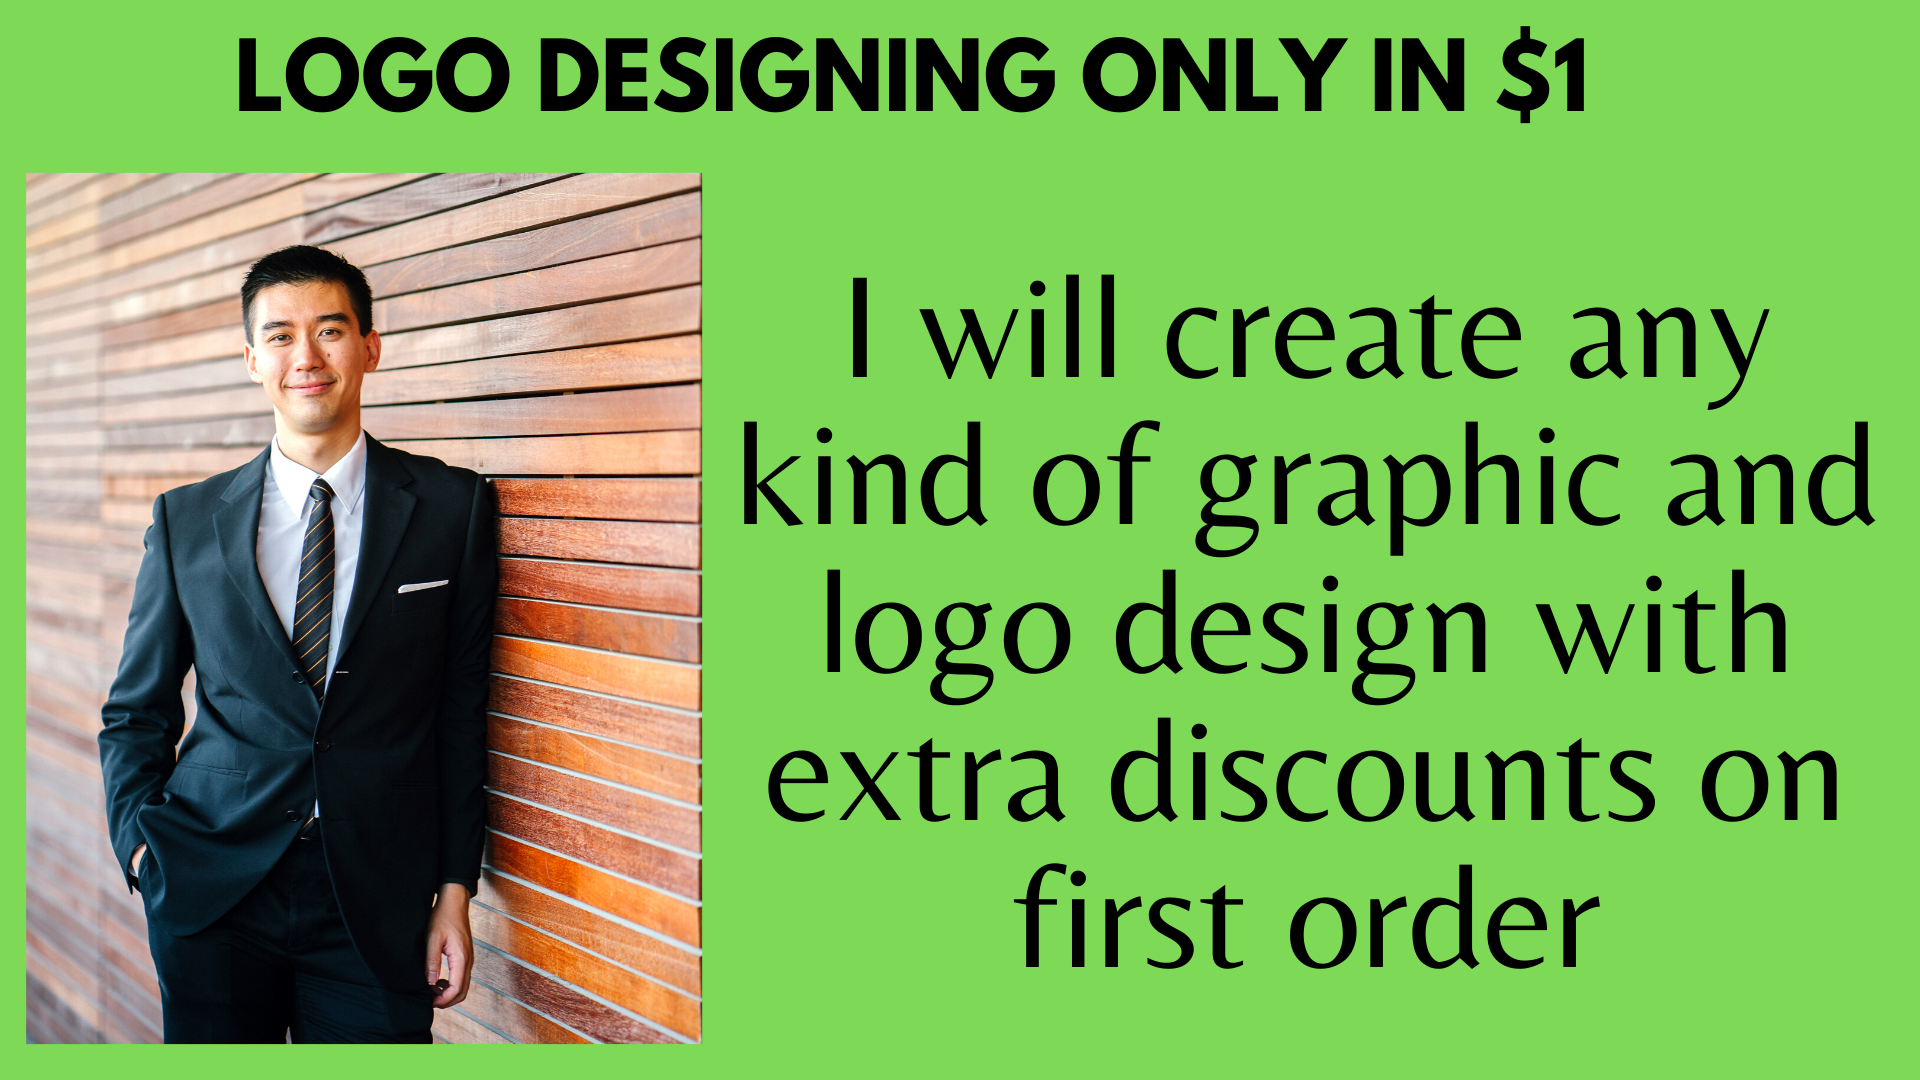 I will give cheapest and responsive minimalist logo with extra discount on first order